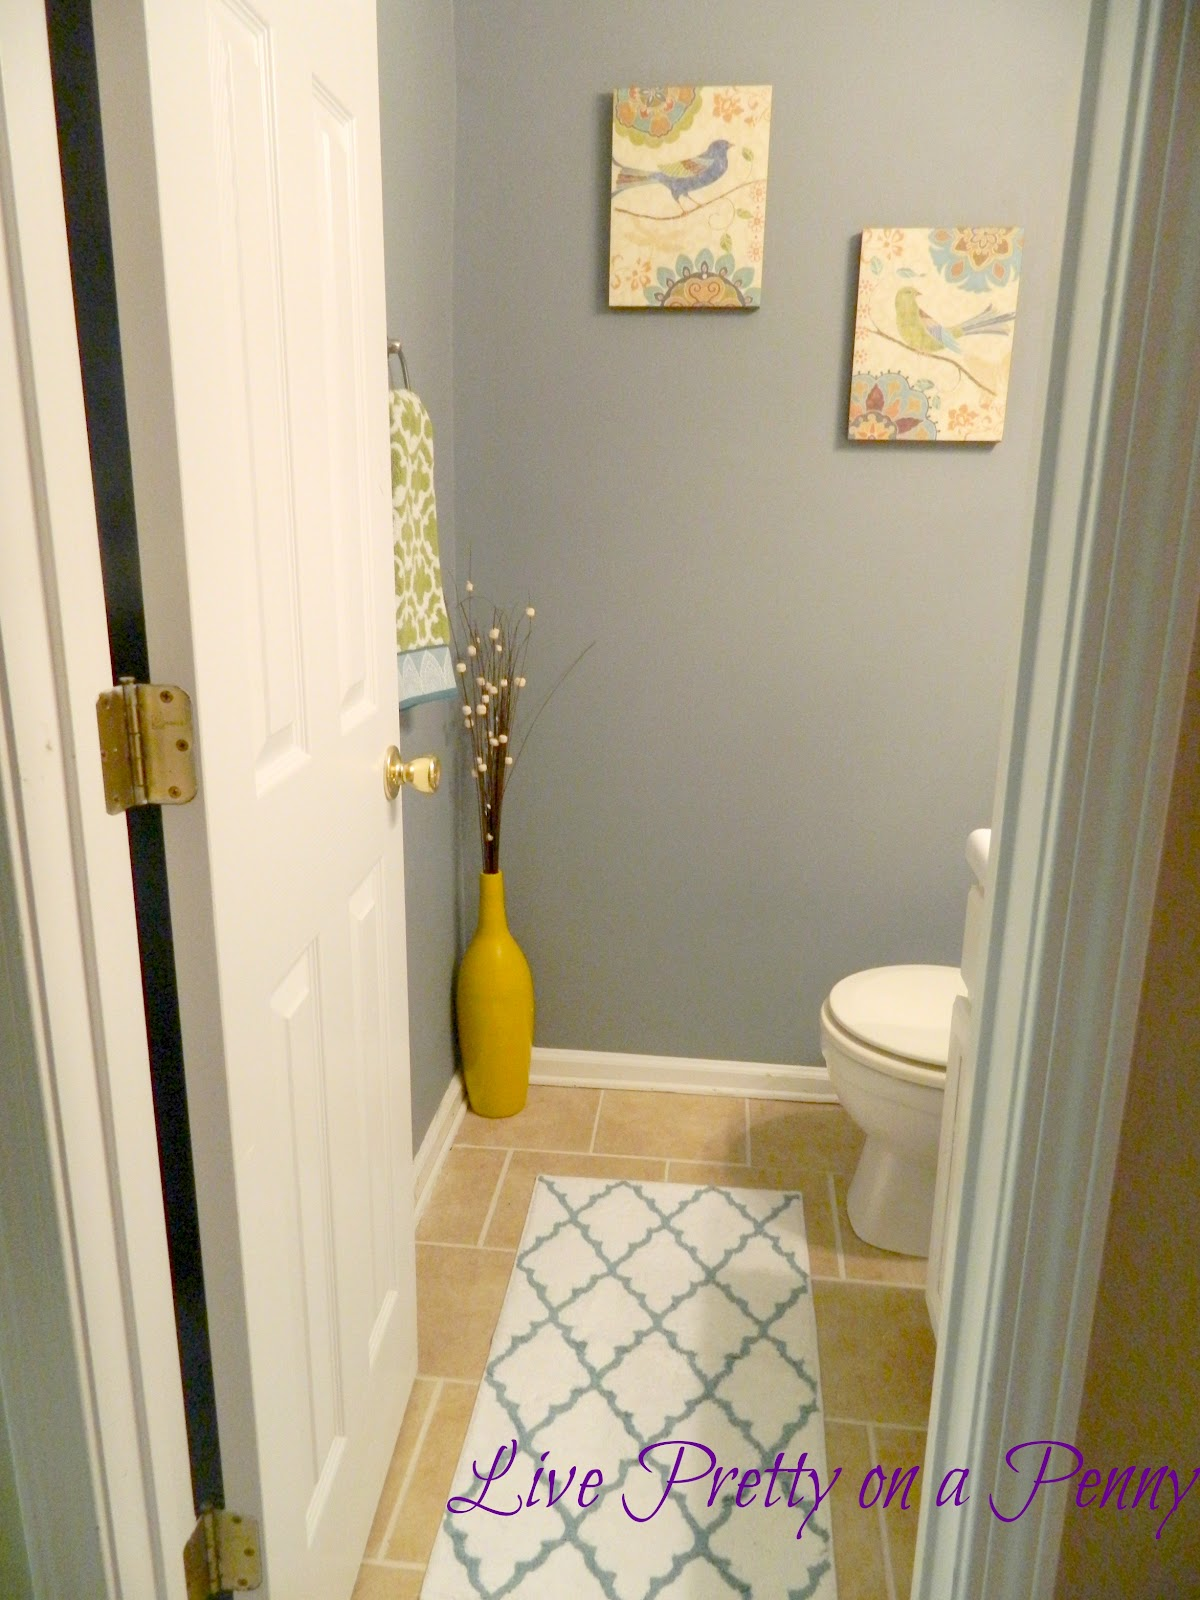 Budget half bath makeover live pretty on a penny for Bathroom decor 2012